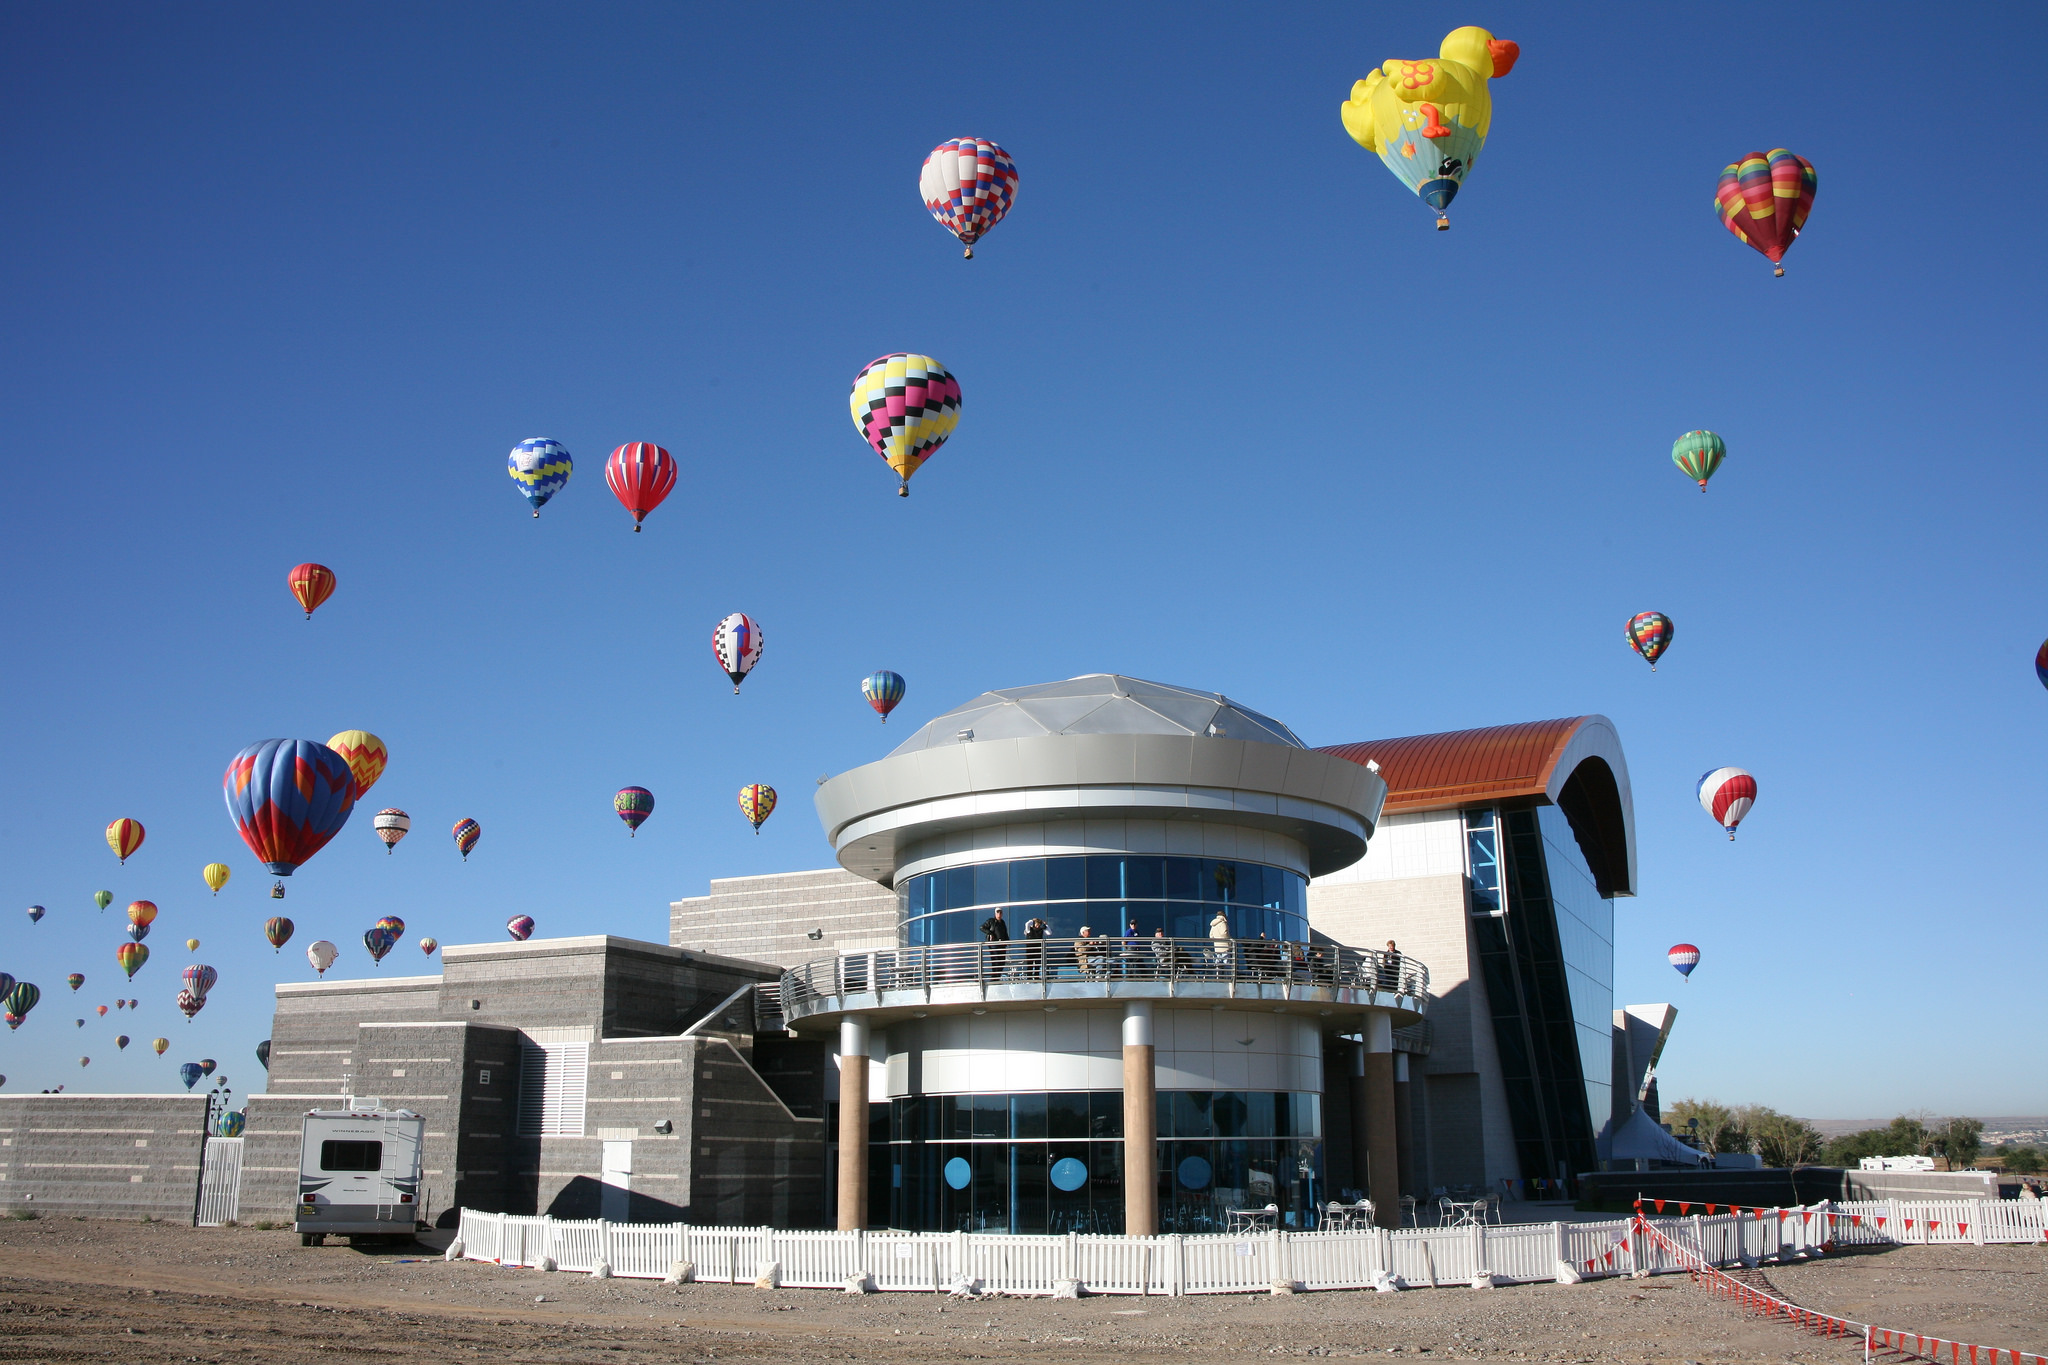 The Anderson Abruzzo Albuquerque International Balloon Museum with balloons overhead